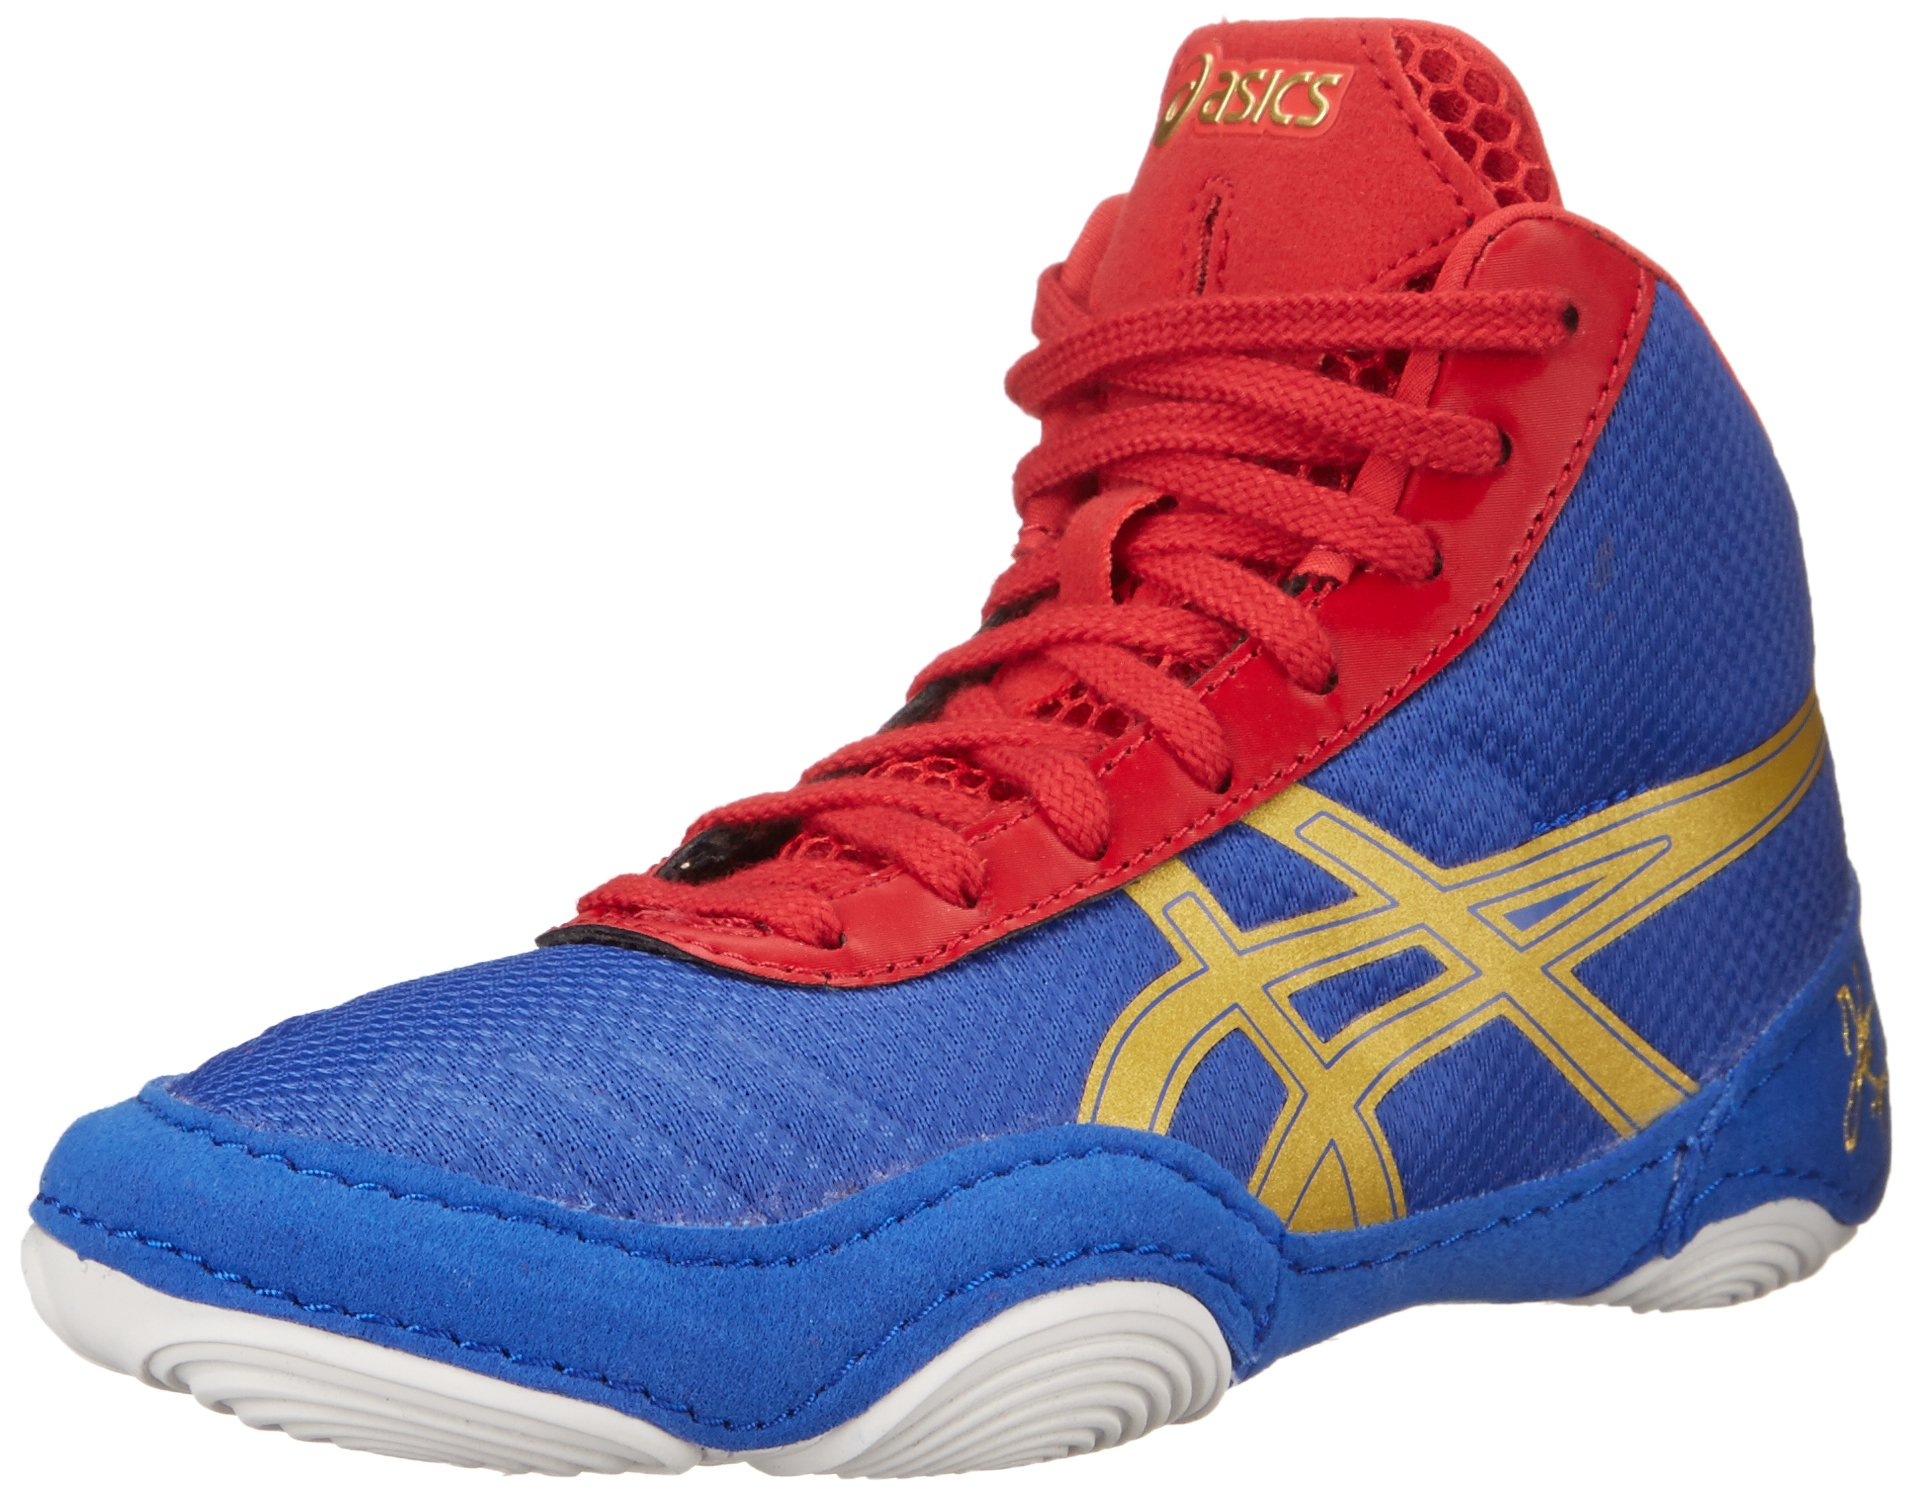 ASICS JB Elite V2.0 GS Wrestling Shoe (Little Kid/Big Kid), Jet Blue/Olympic Gold/Red, 3 M US Little Kid by ASICS